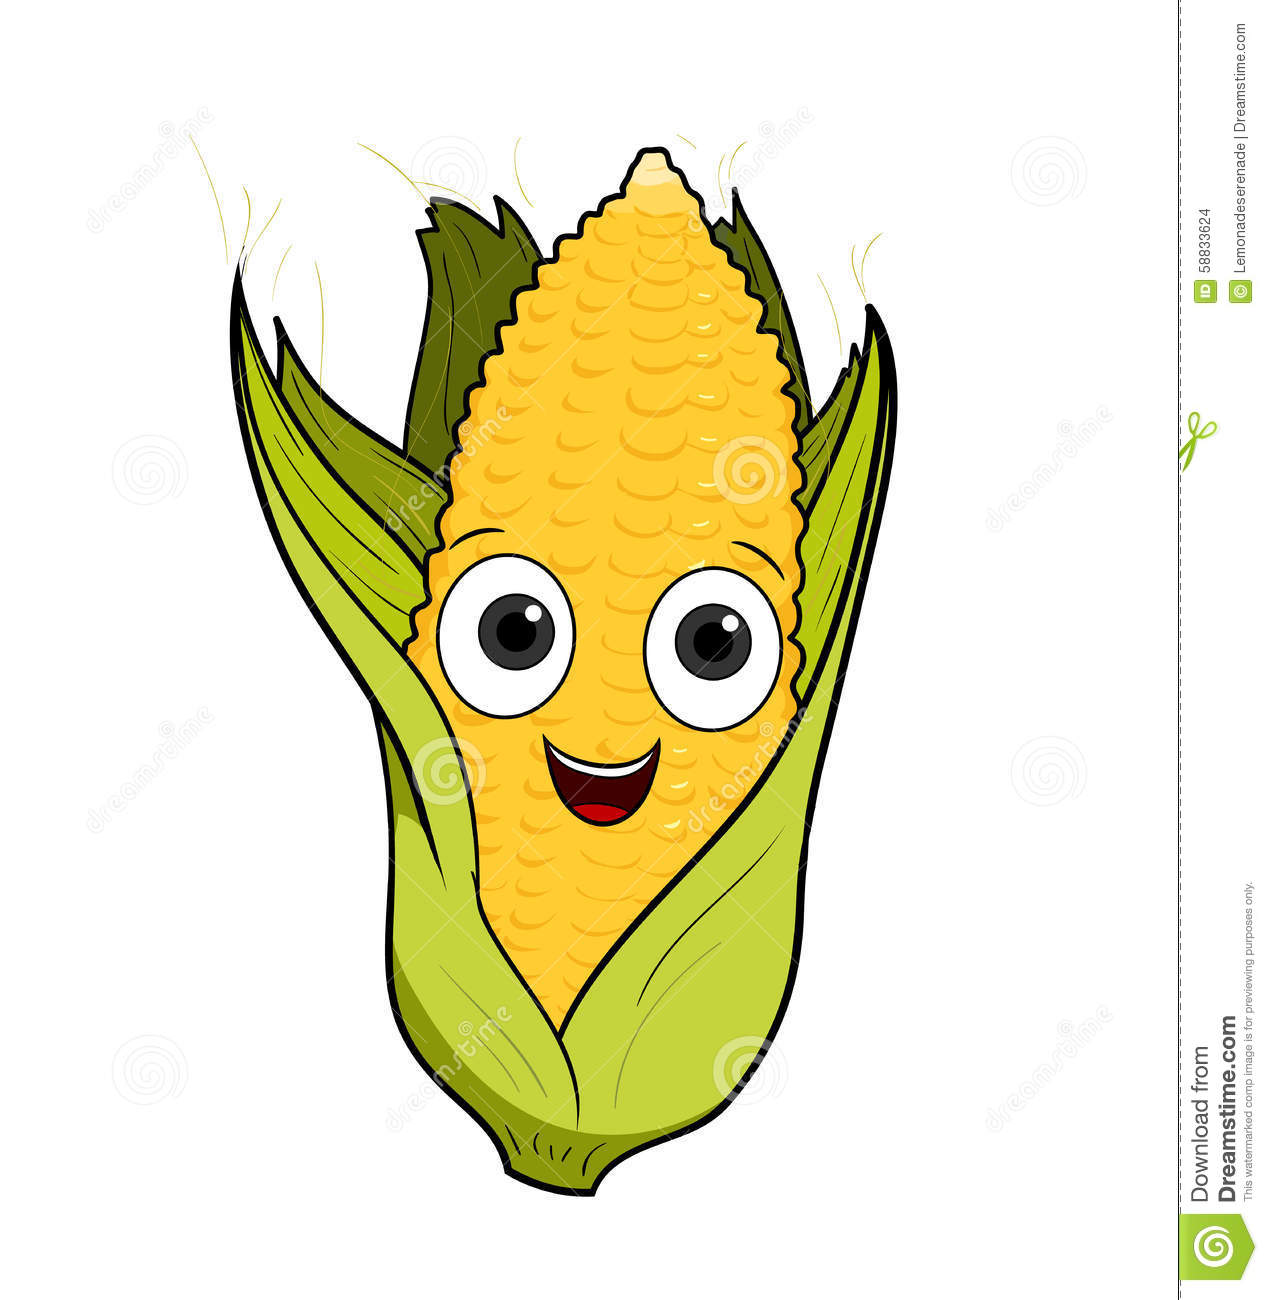 hand drawn vector illustration of a cartoon corn.